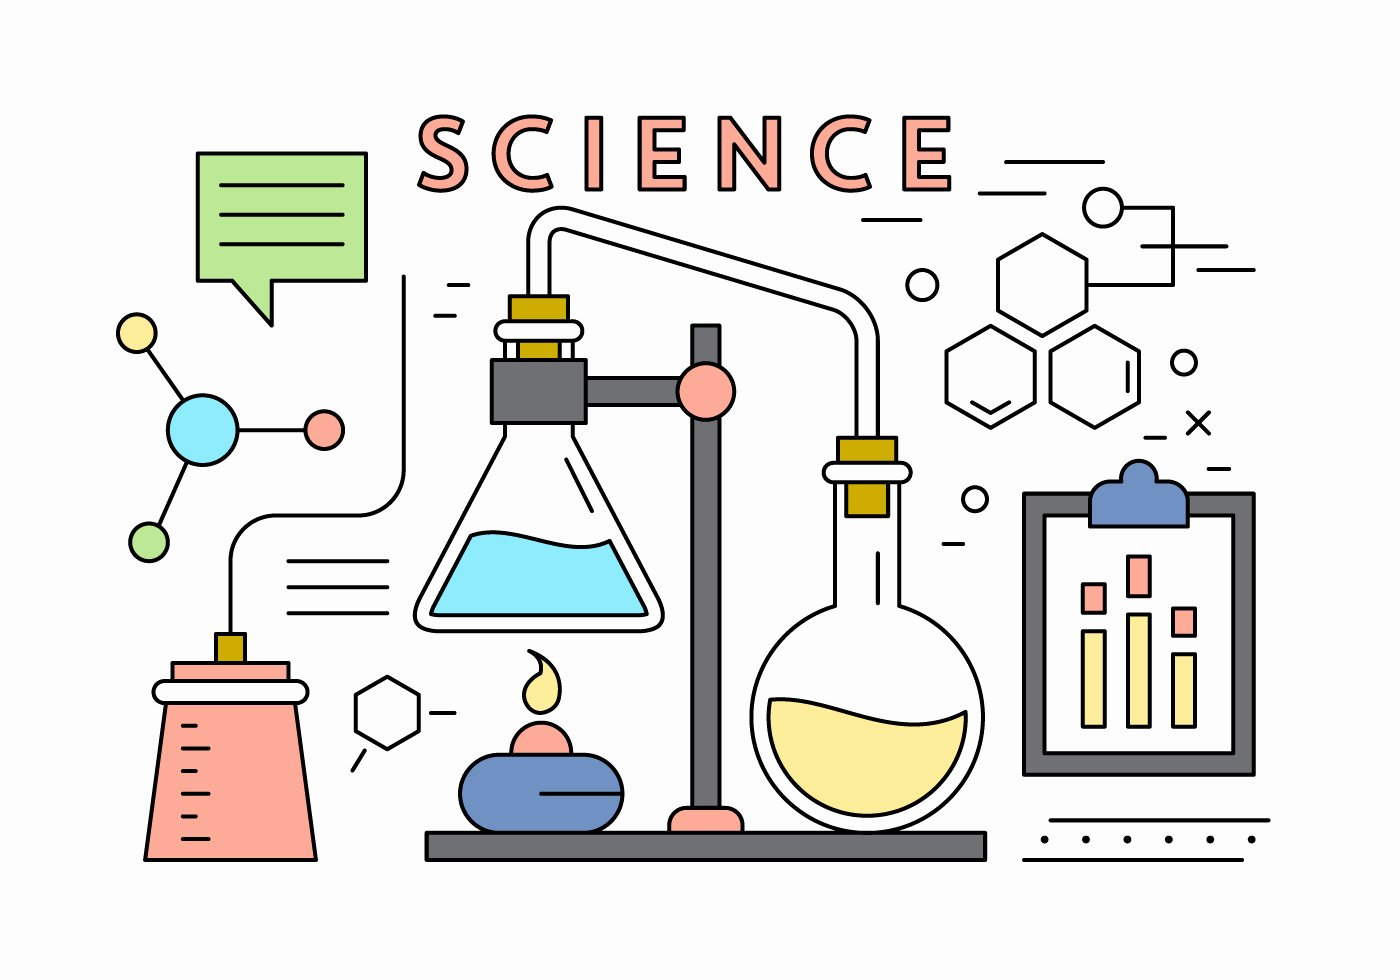 Free Science Powerpoint Templates Fresh Science Vector Elements Download Free Vector Art Stock Graphics &